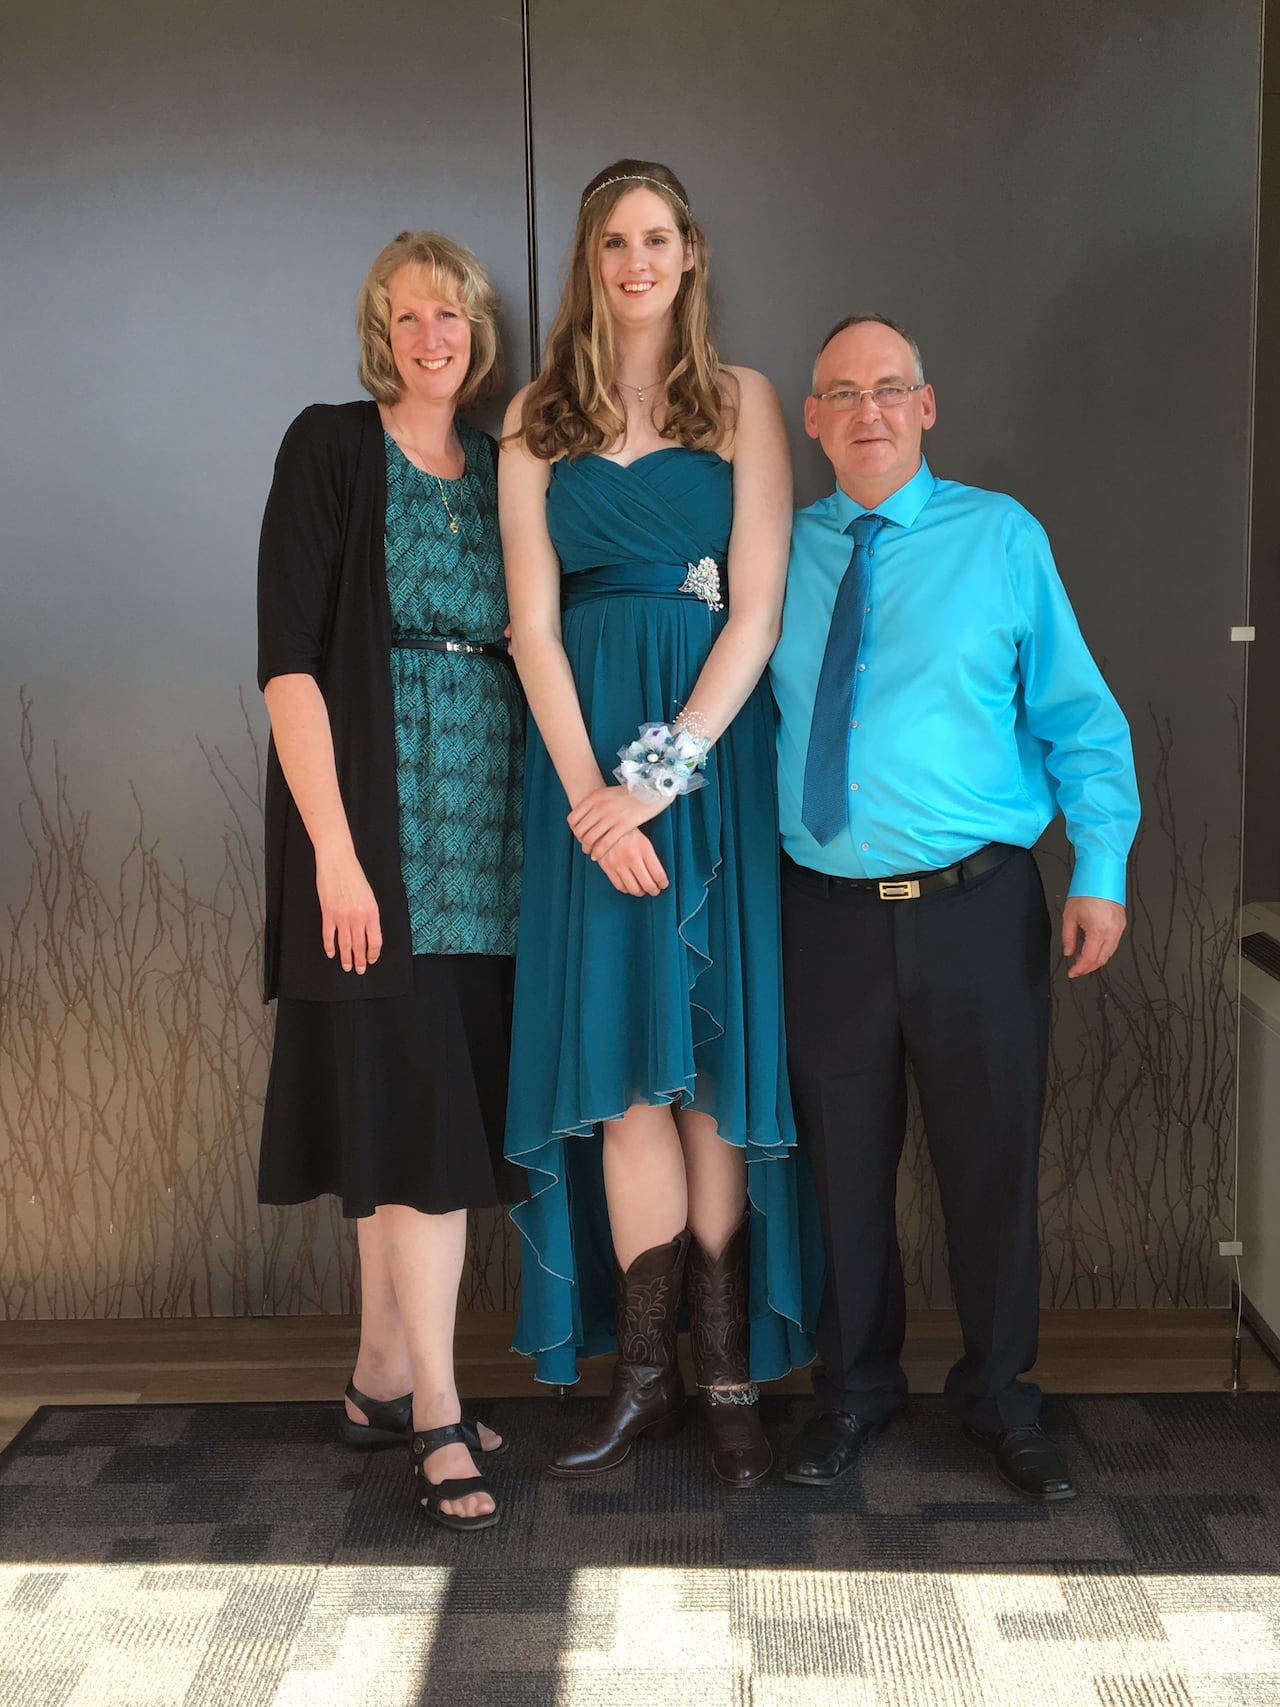 My daughter is taller than her father